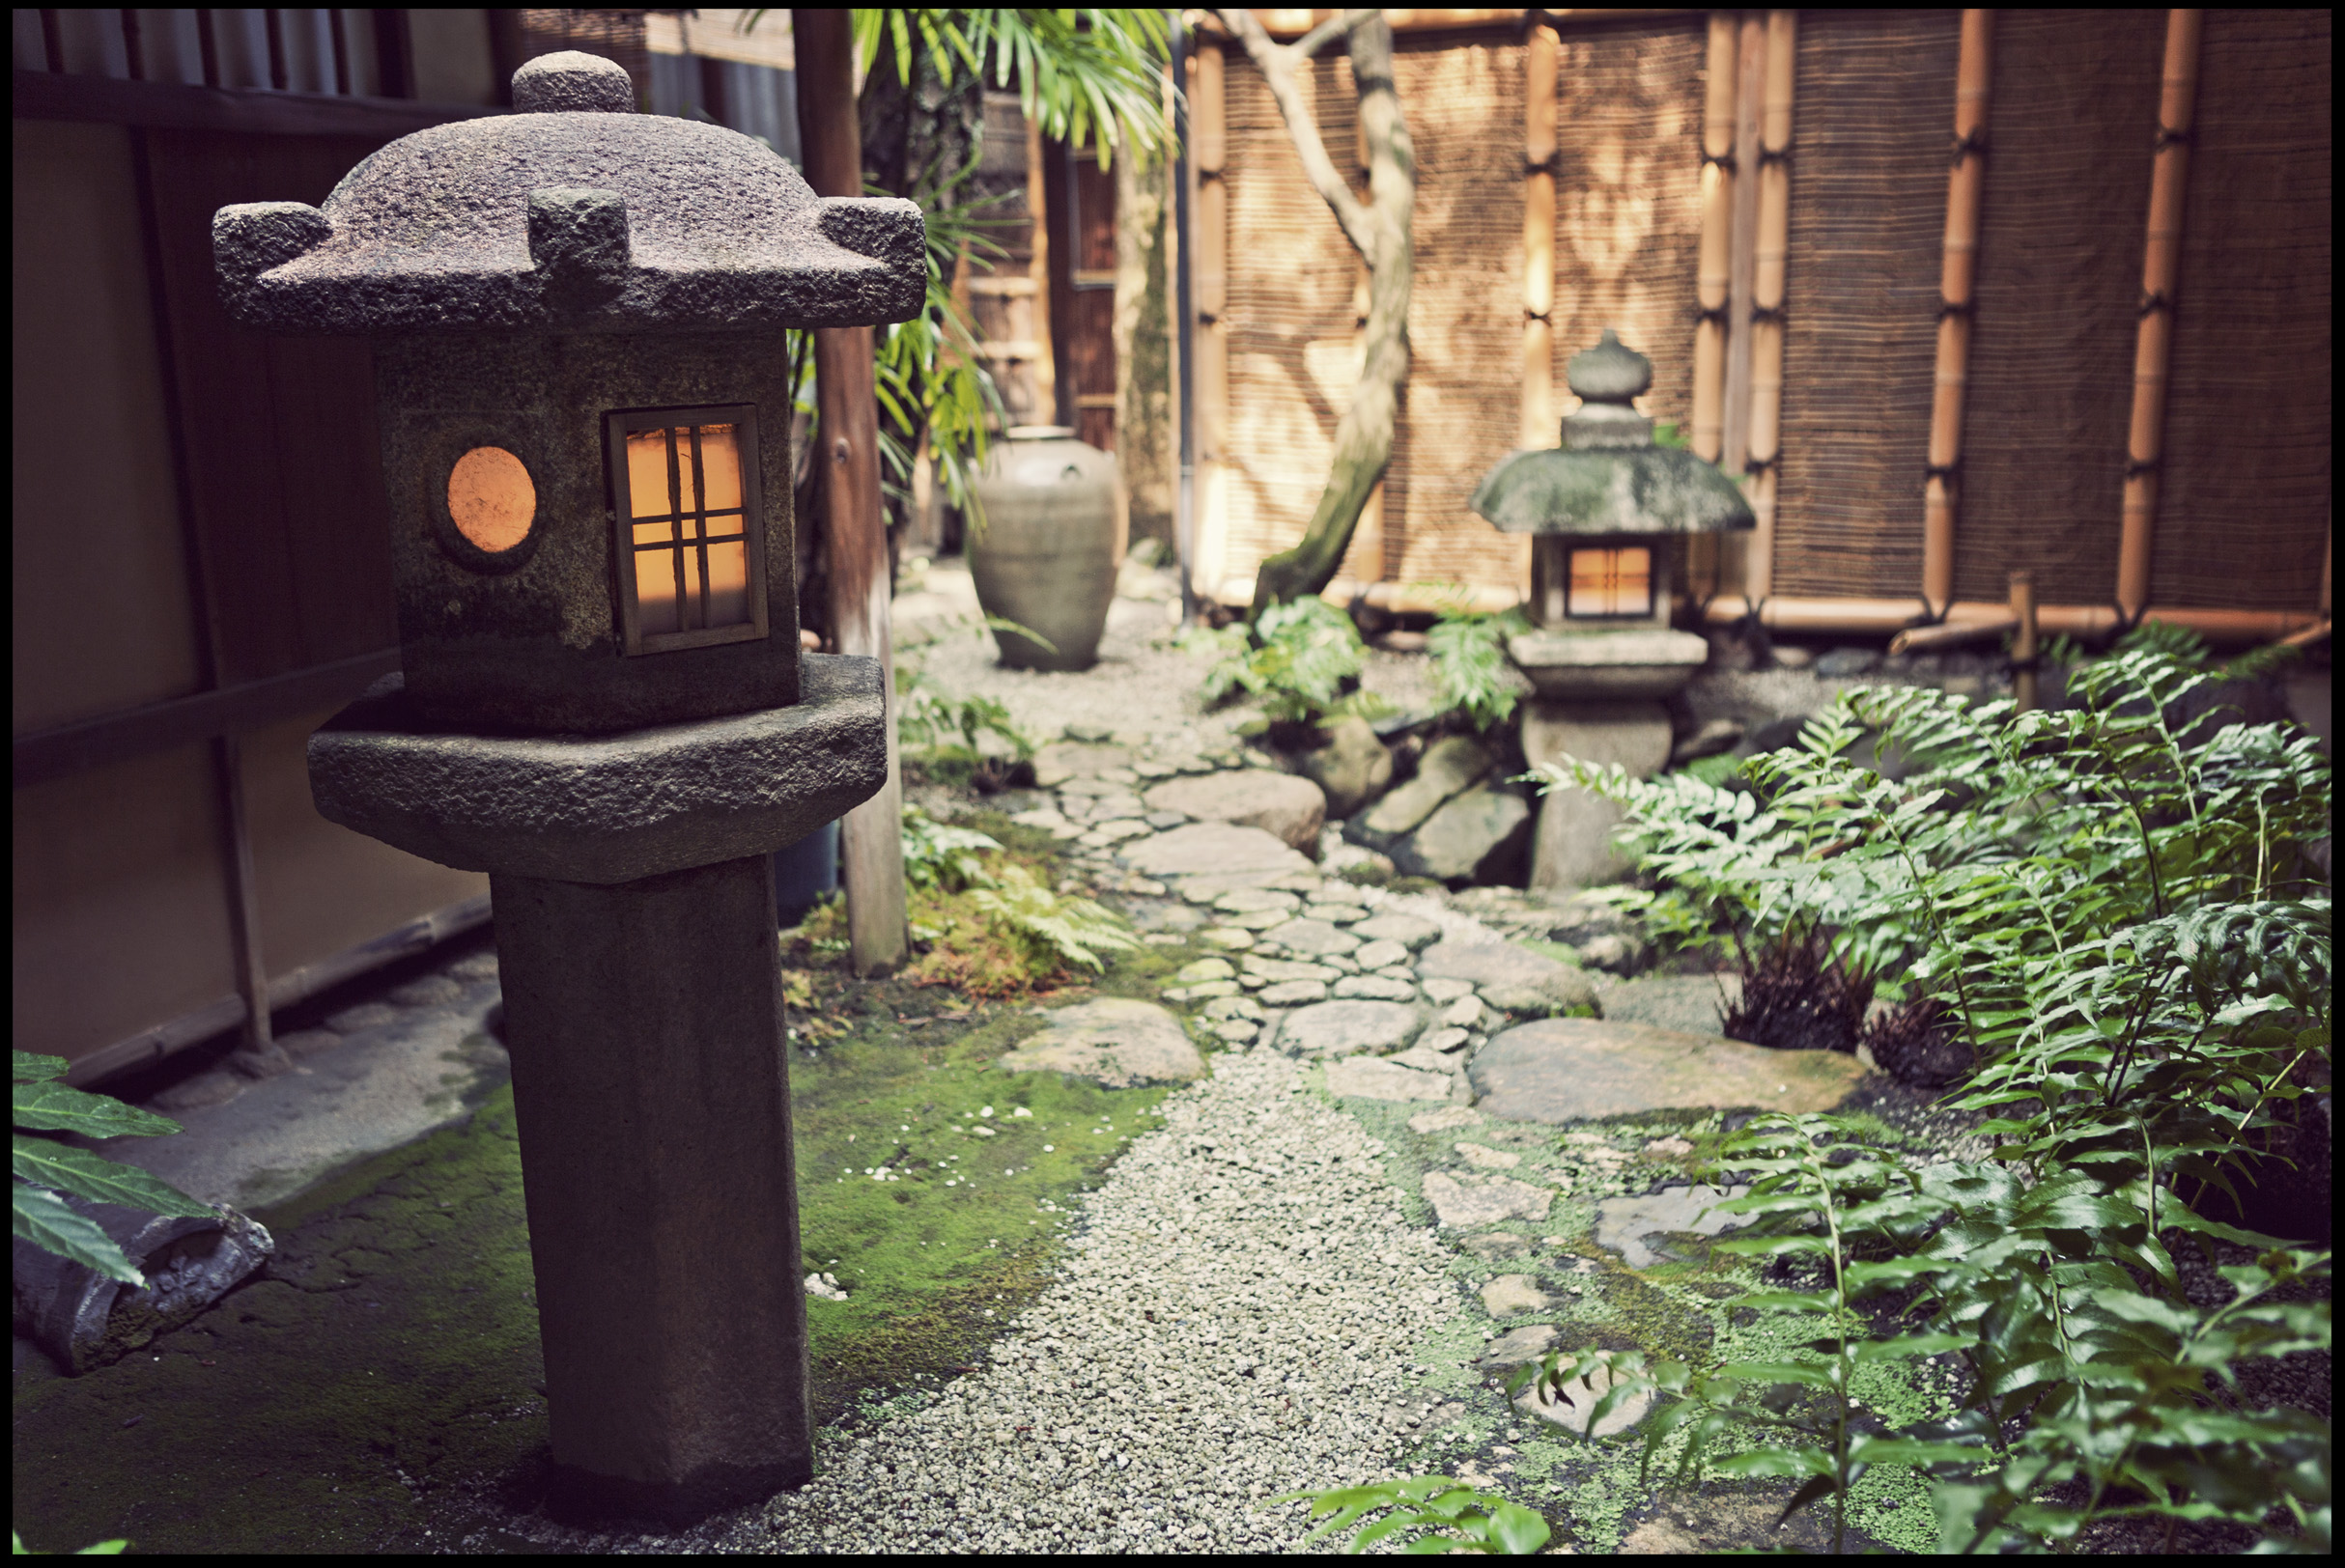 The garden at Yoshikawa Inn in Kyoto, Japan.